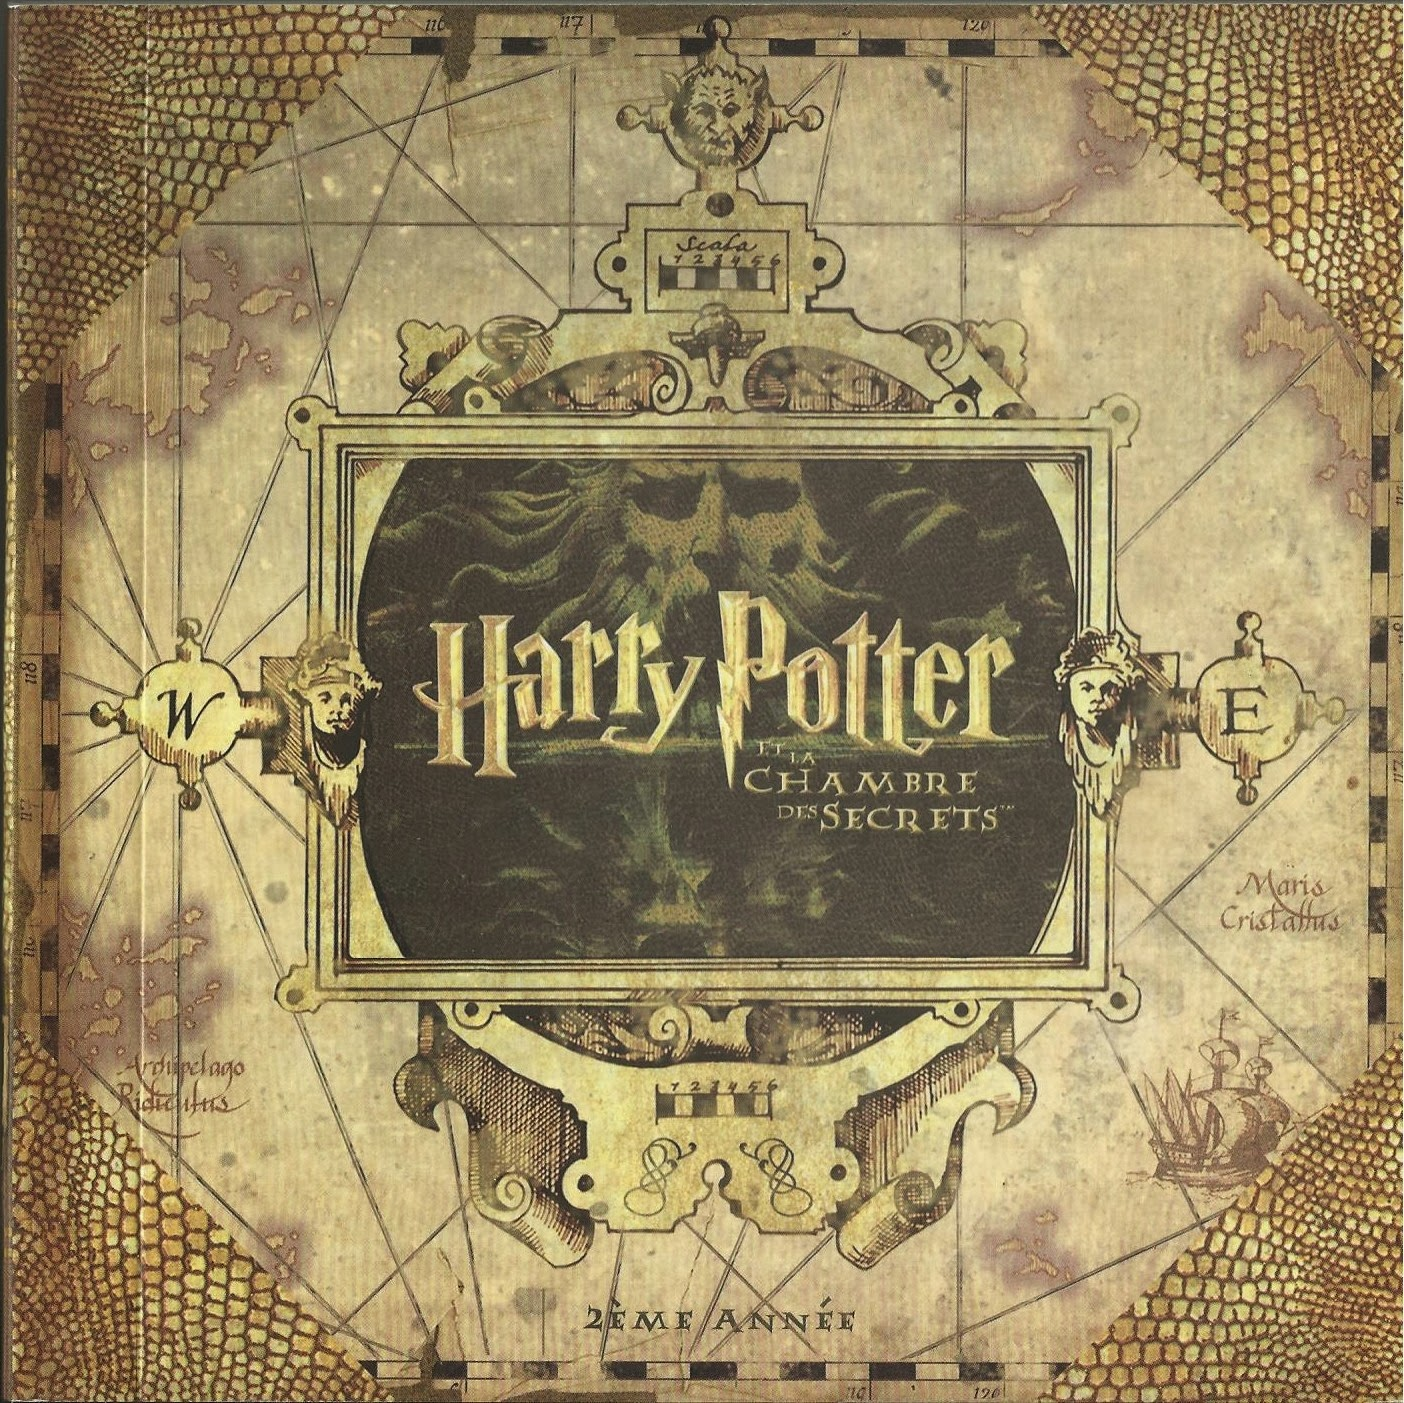 Harry Potter Et La Chambre Secrète Harry Potter Coffret Ultime Magiquement Potter